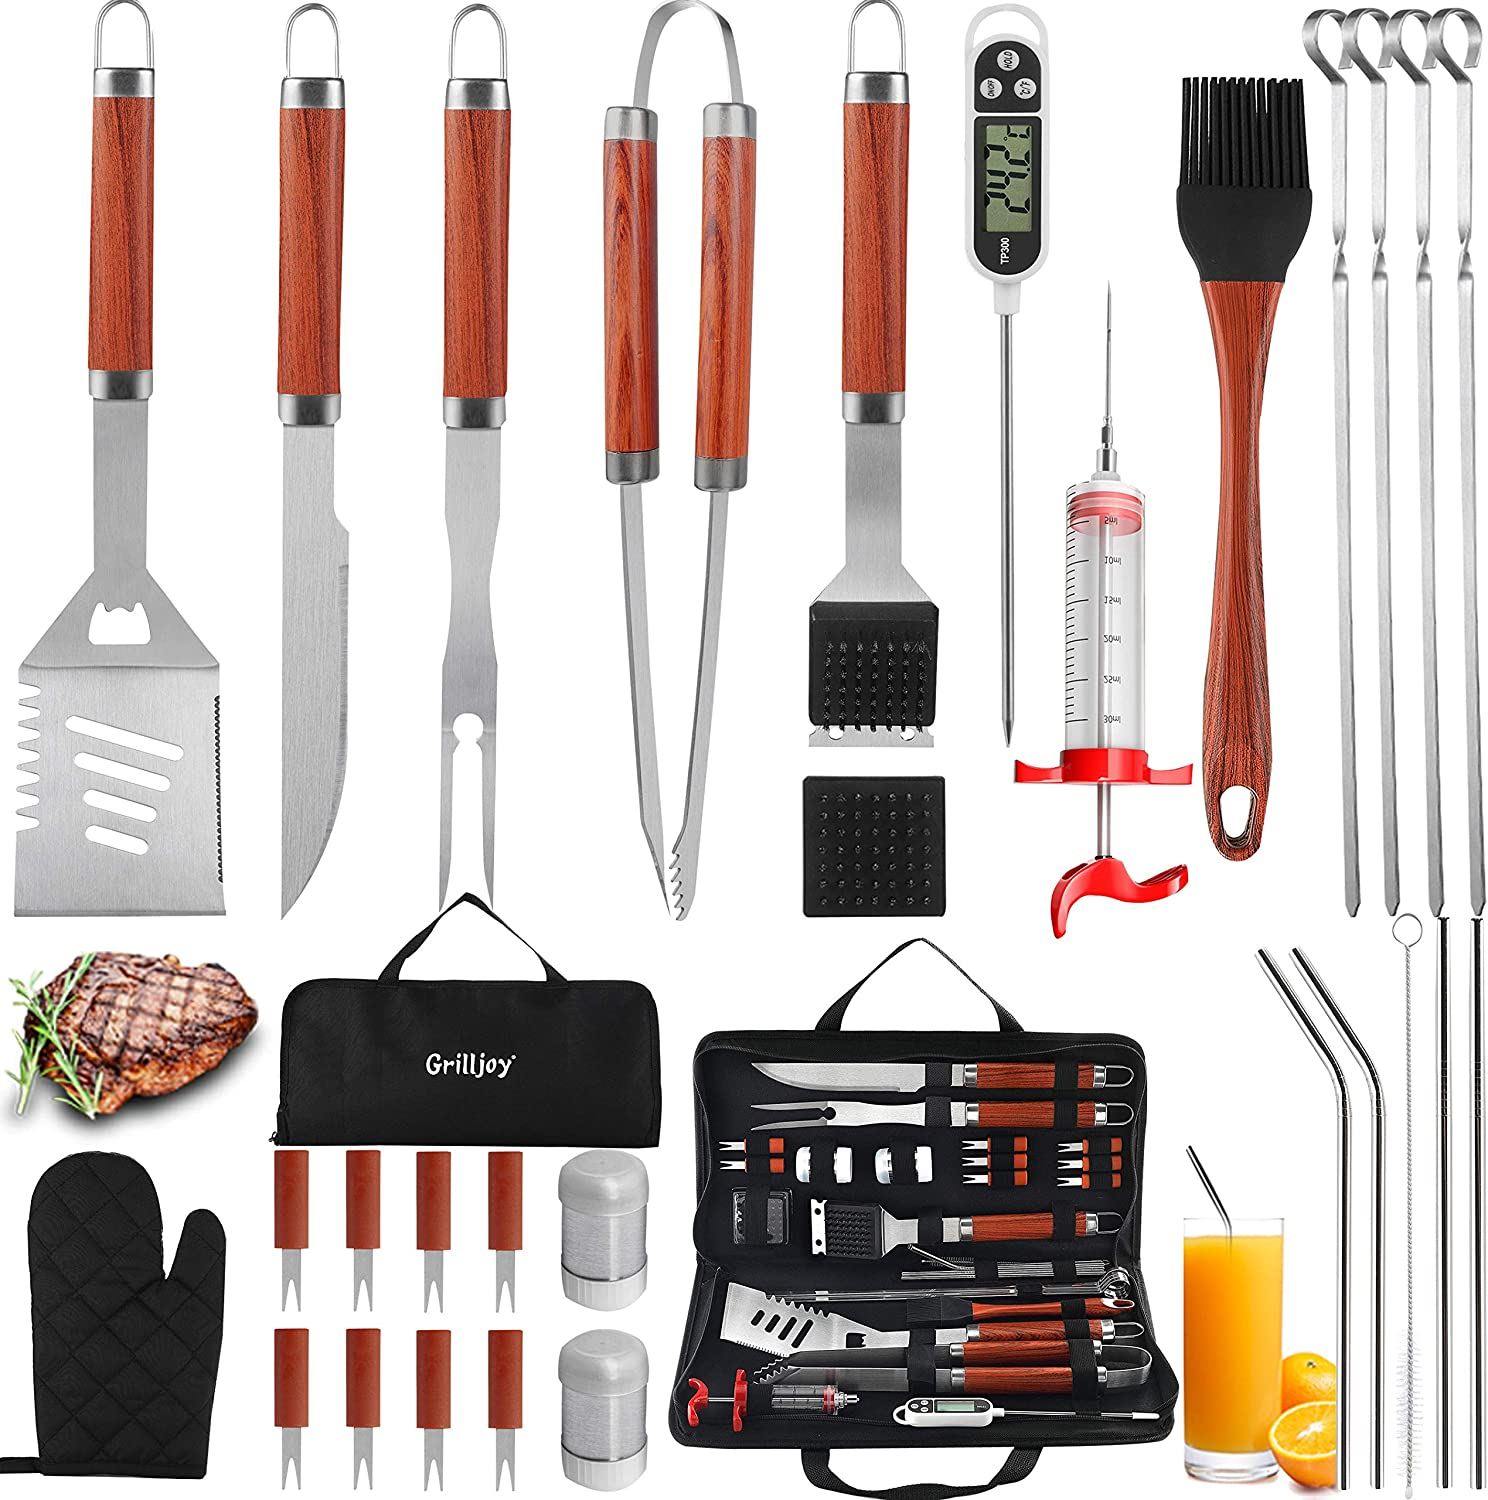 grilljoy 30PCS BBQ Grill Tools Set with Thermometer and Meat Injector. Extra Thick Stainless Steel Spatula, Fork& Tongs - Complete Grilling Accessories in Portable Bag - Perfect Grill Set Gift.